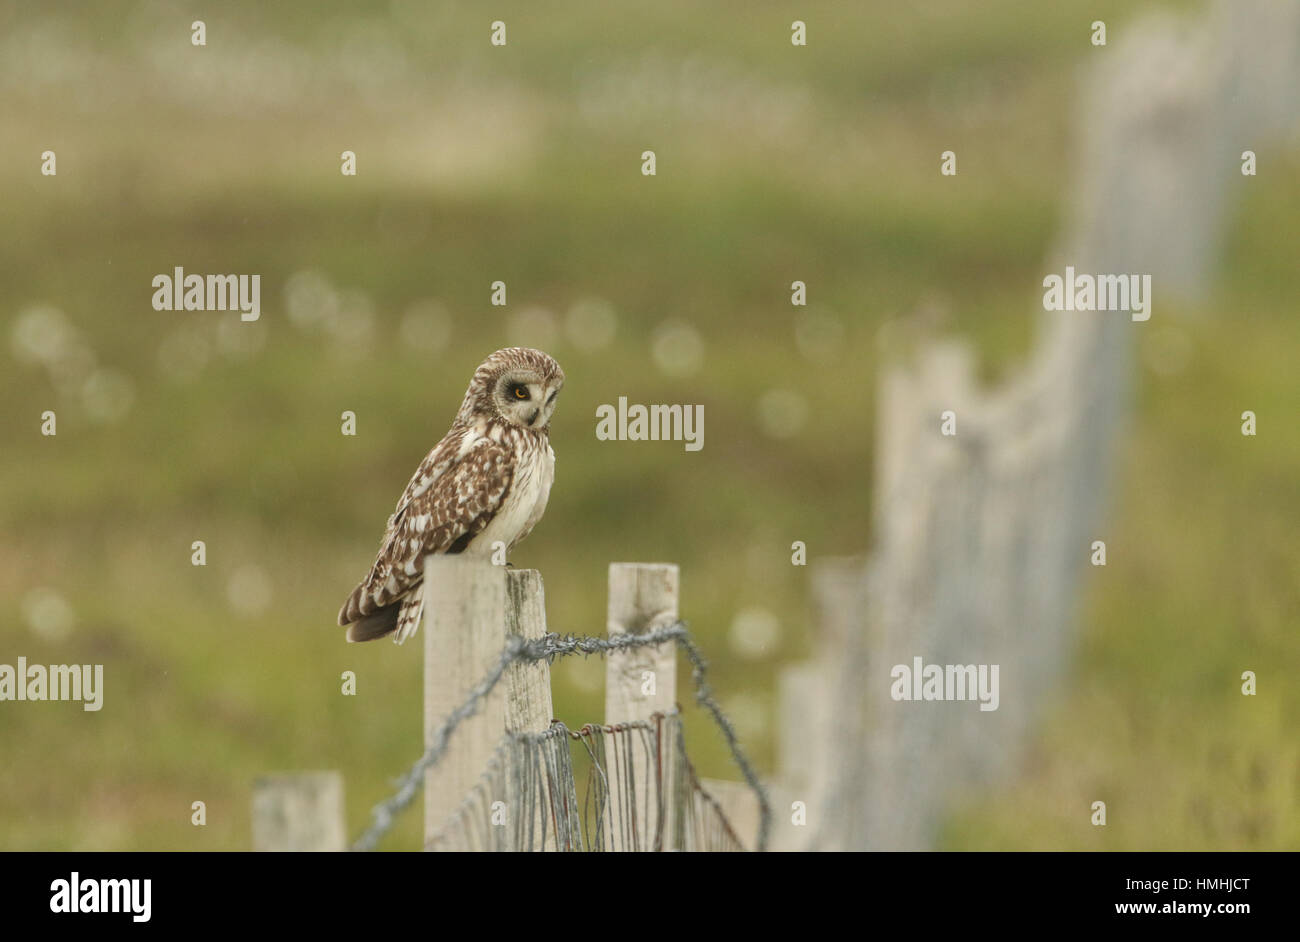 A stunning Short-eared Owl (Asio flammeus) sitting on a fence post . - Stock Image